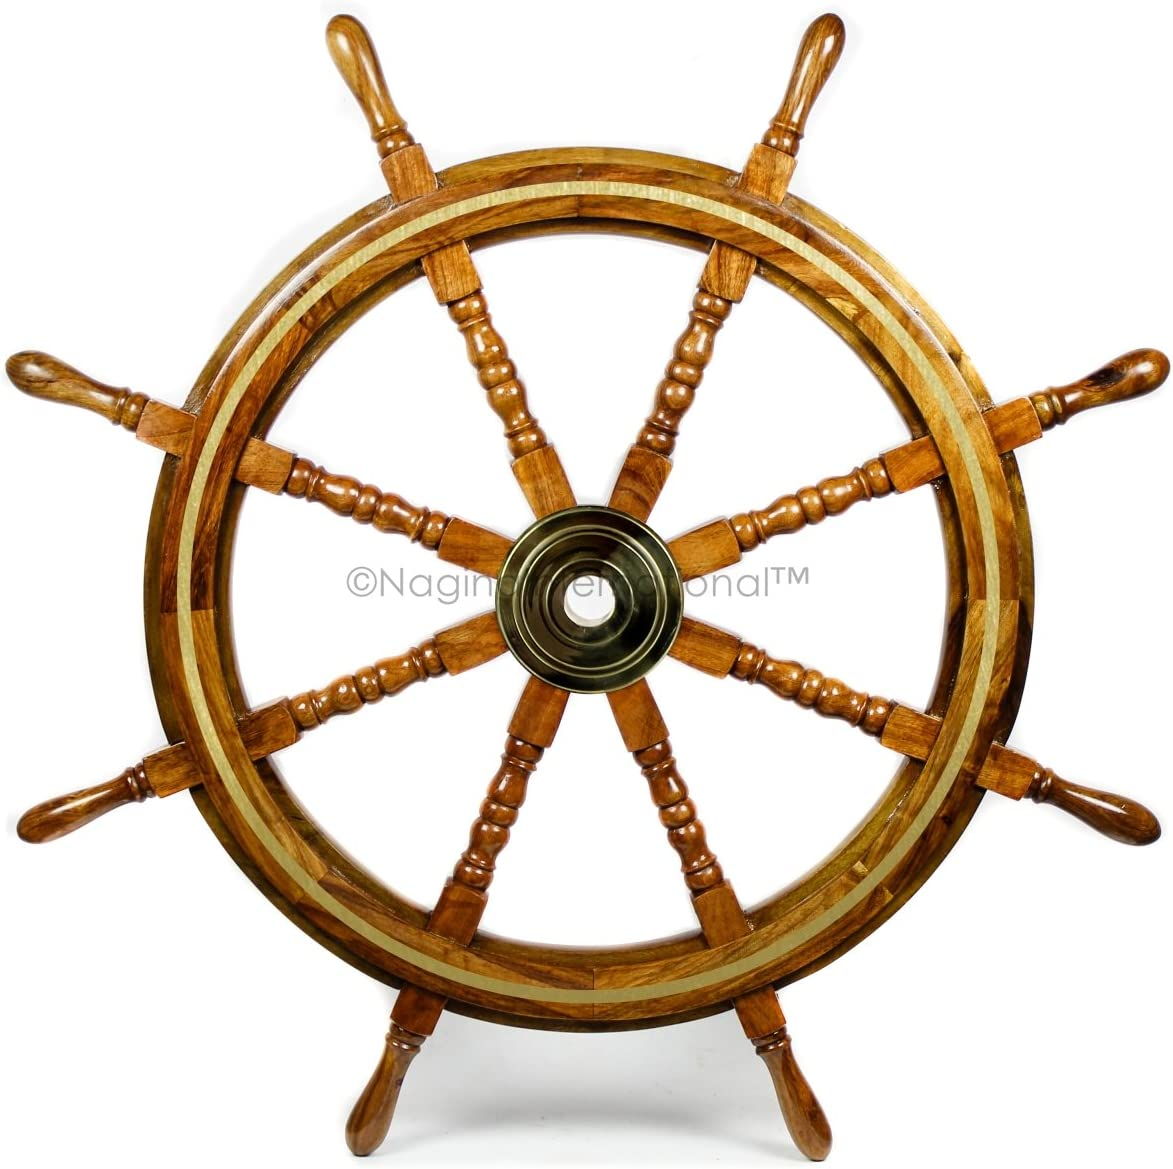 Nagina International Wooden Nautical Captain s Steering Ship Wheel with Brass Ring Hub – Pirate Home Ocean Beach Decor Gift – Nursery Wall Hangings 72 Inches